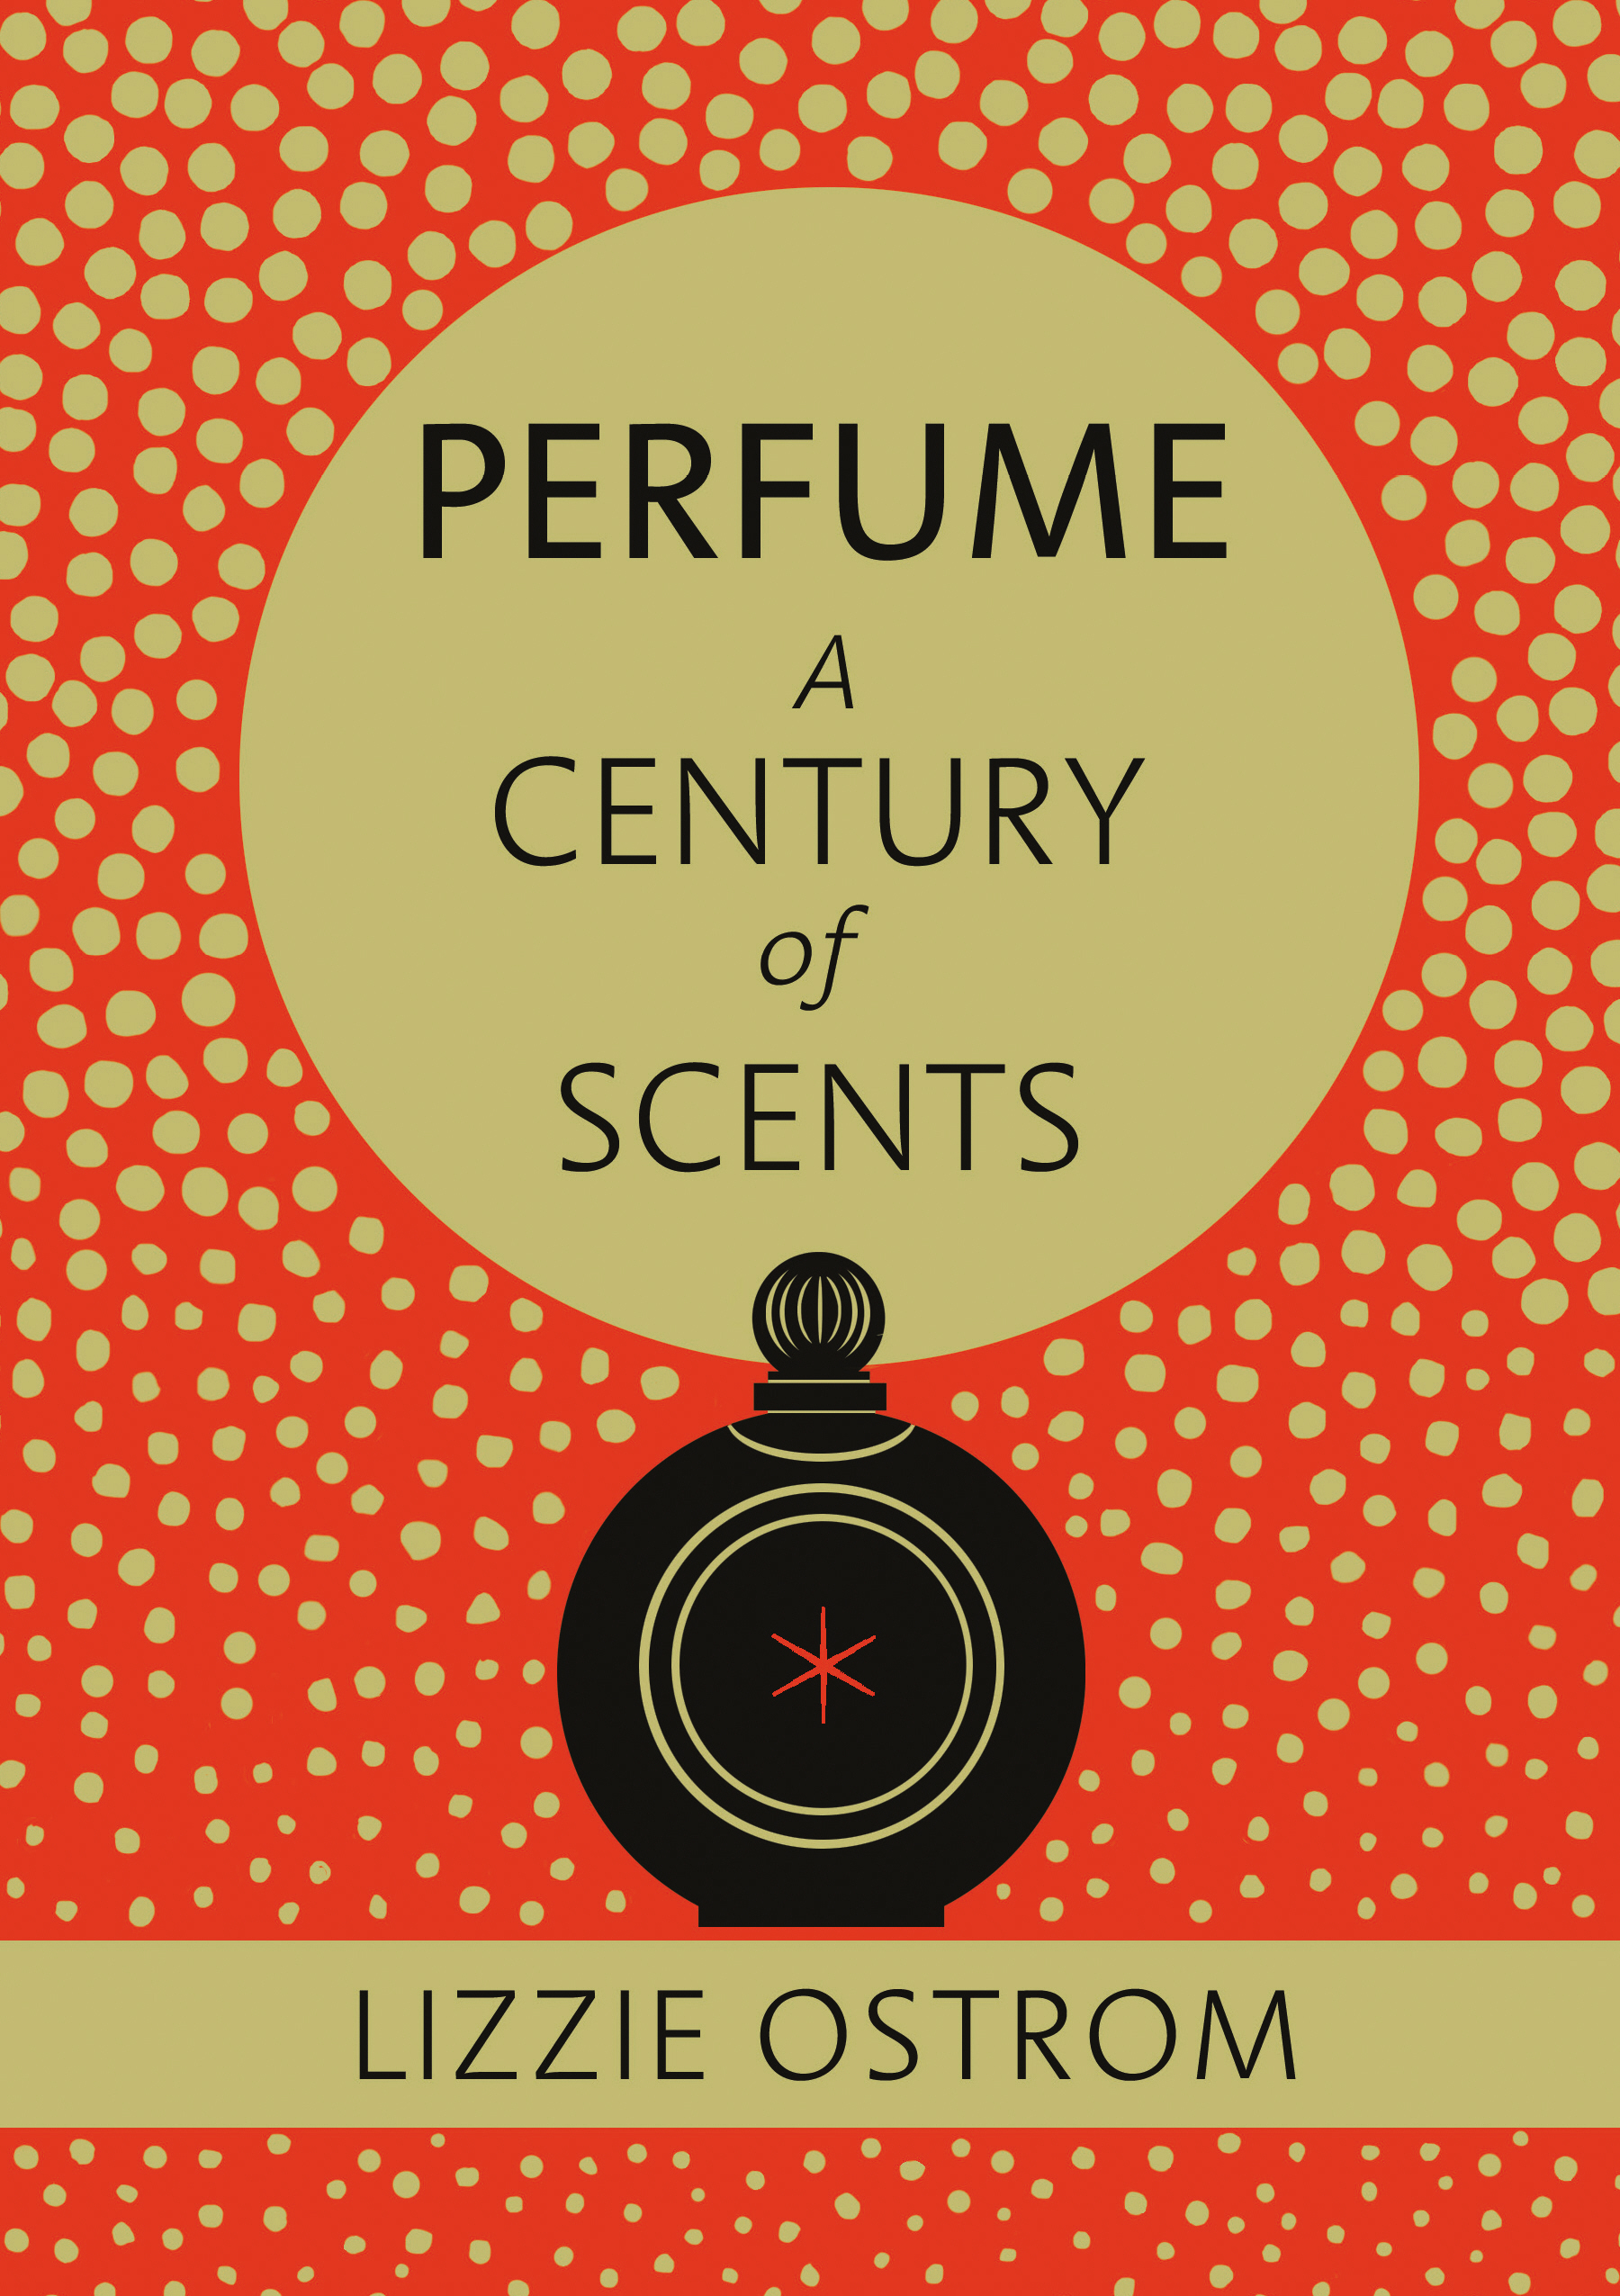 Perfume - A Century of Scents